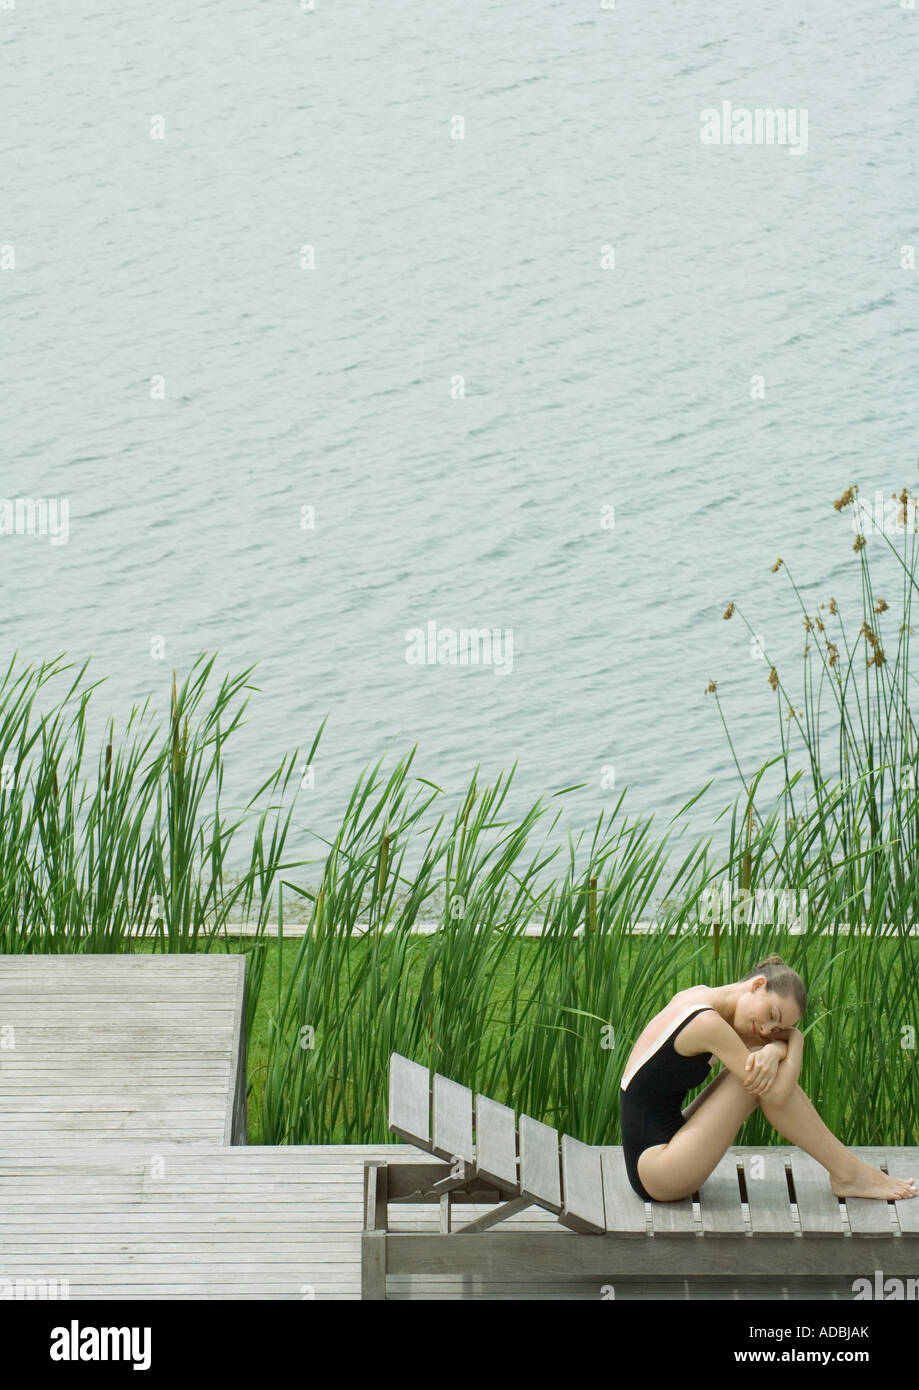 Woman sitting on lounge chair next to lake, hugging knees, resting head on arms - Stock Image